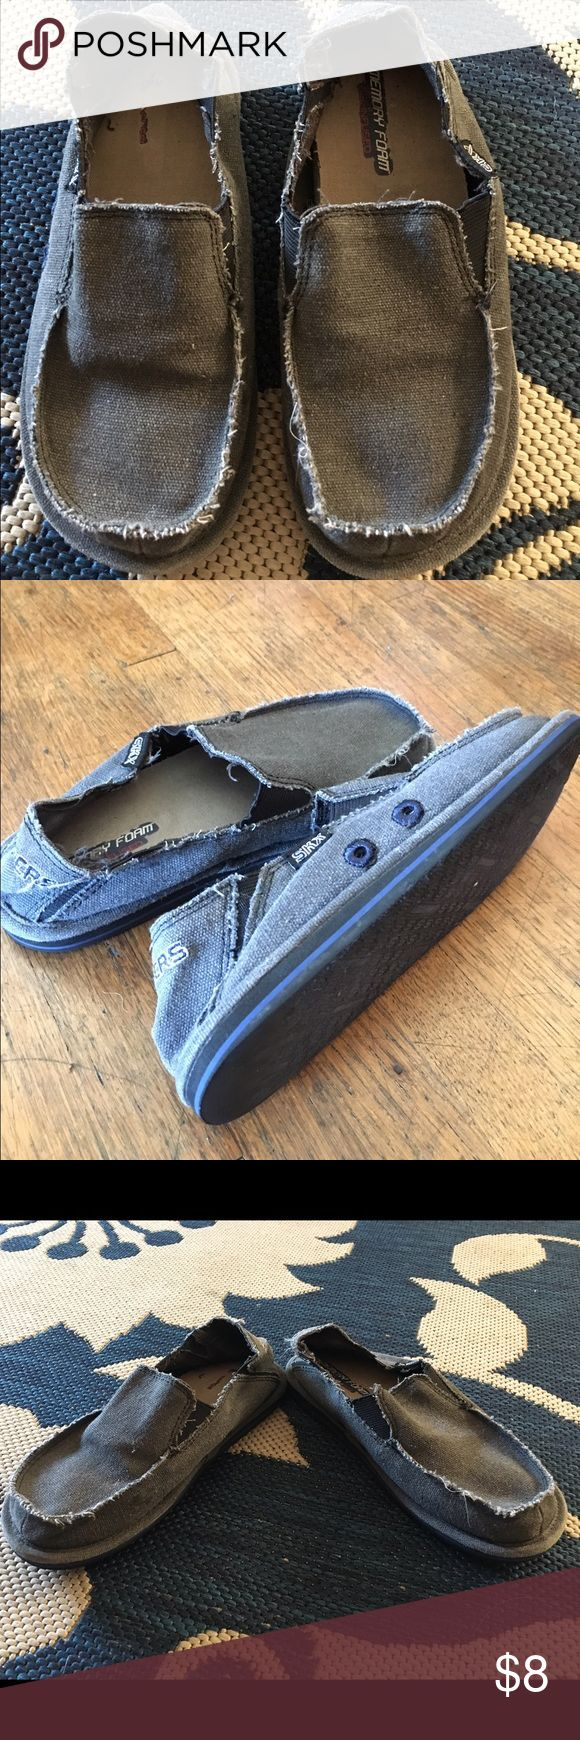 Boys size 2 sketchers shoes in fair condition Boys size 2 sketchers shoes in fair condition all of green color with some blue. Skechers Shoes Slippers